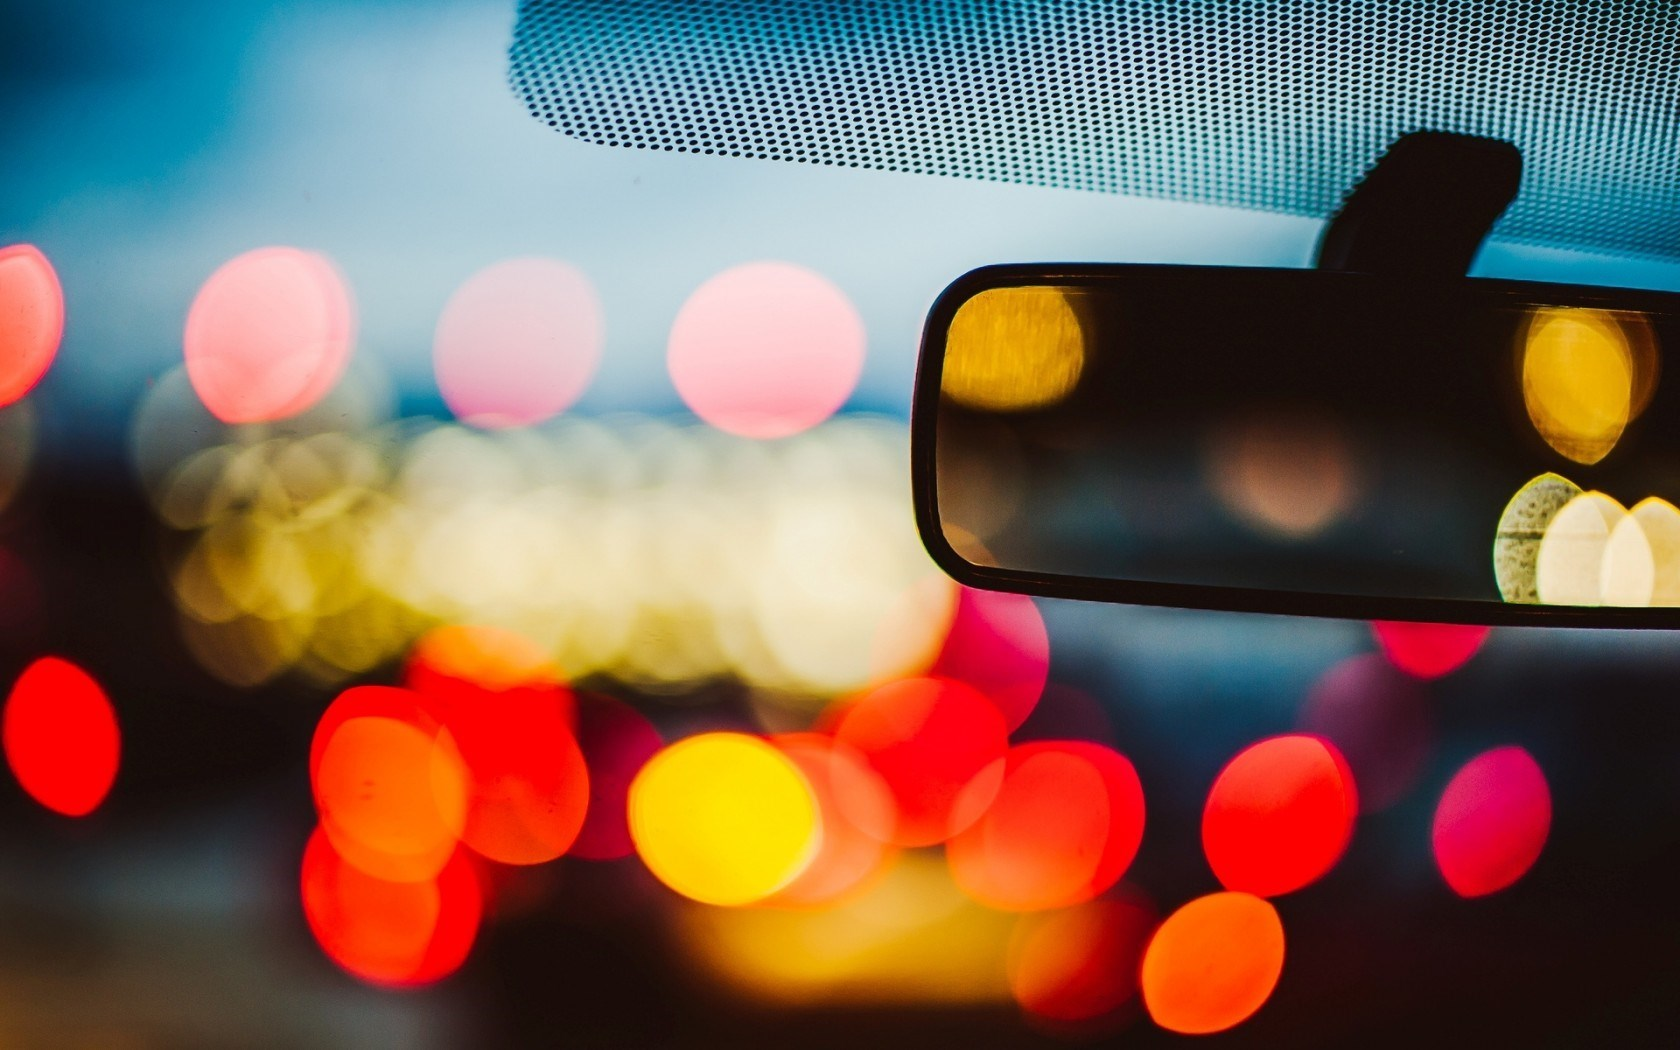 cool car mirror wallpaper 43443